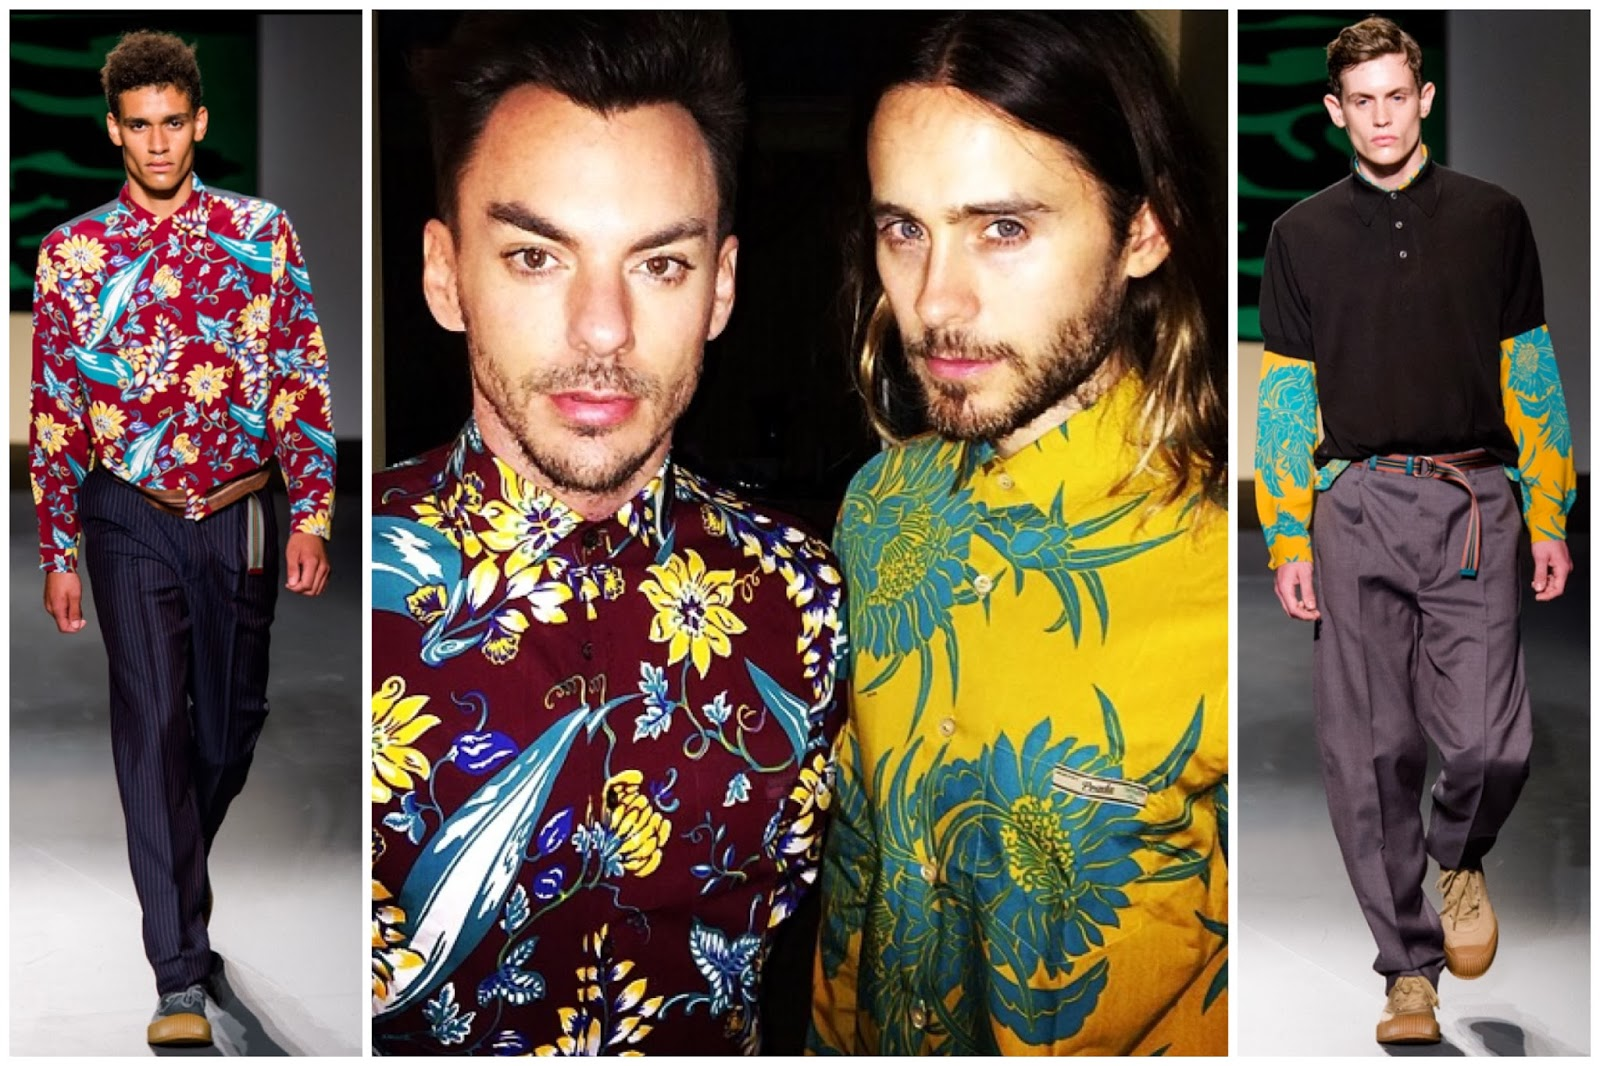 Jared Leto and Shannon Leto in Prada - Shannon Leto's Birthday Celebrations